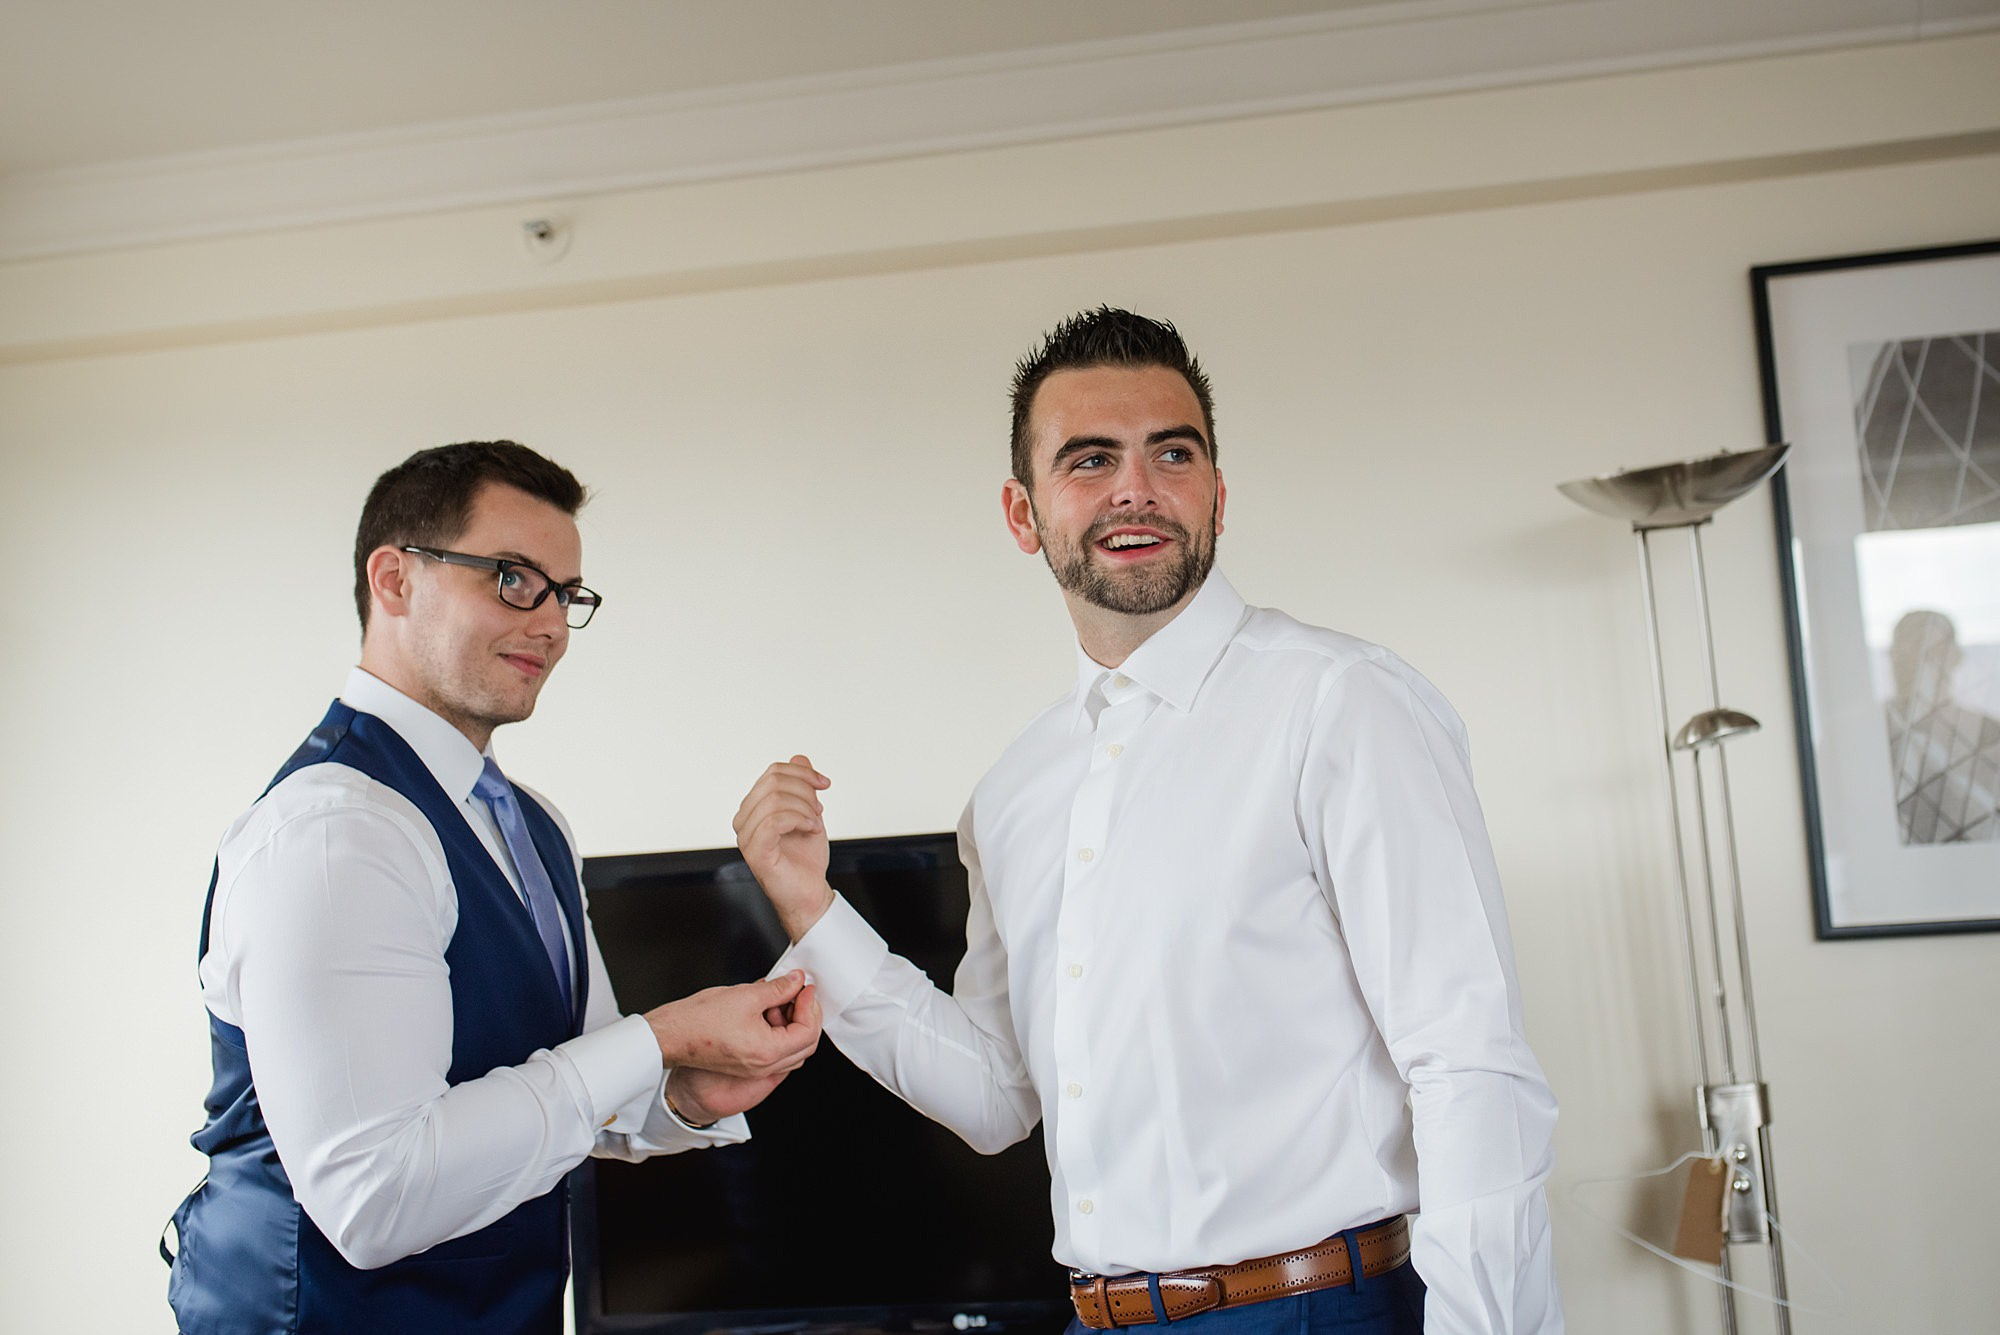 The Union Paddington Wedding groomsman helps groom with cufflinks